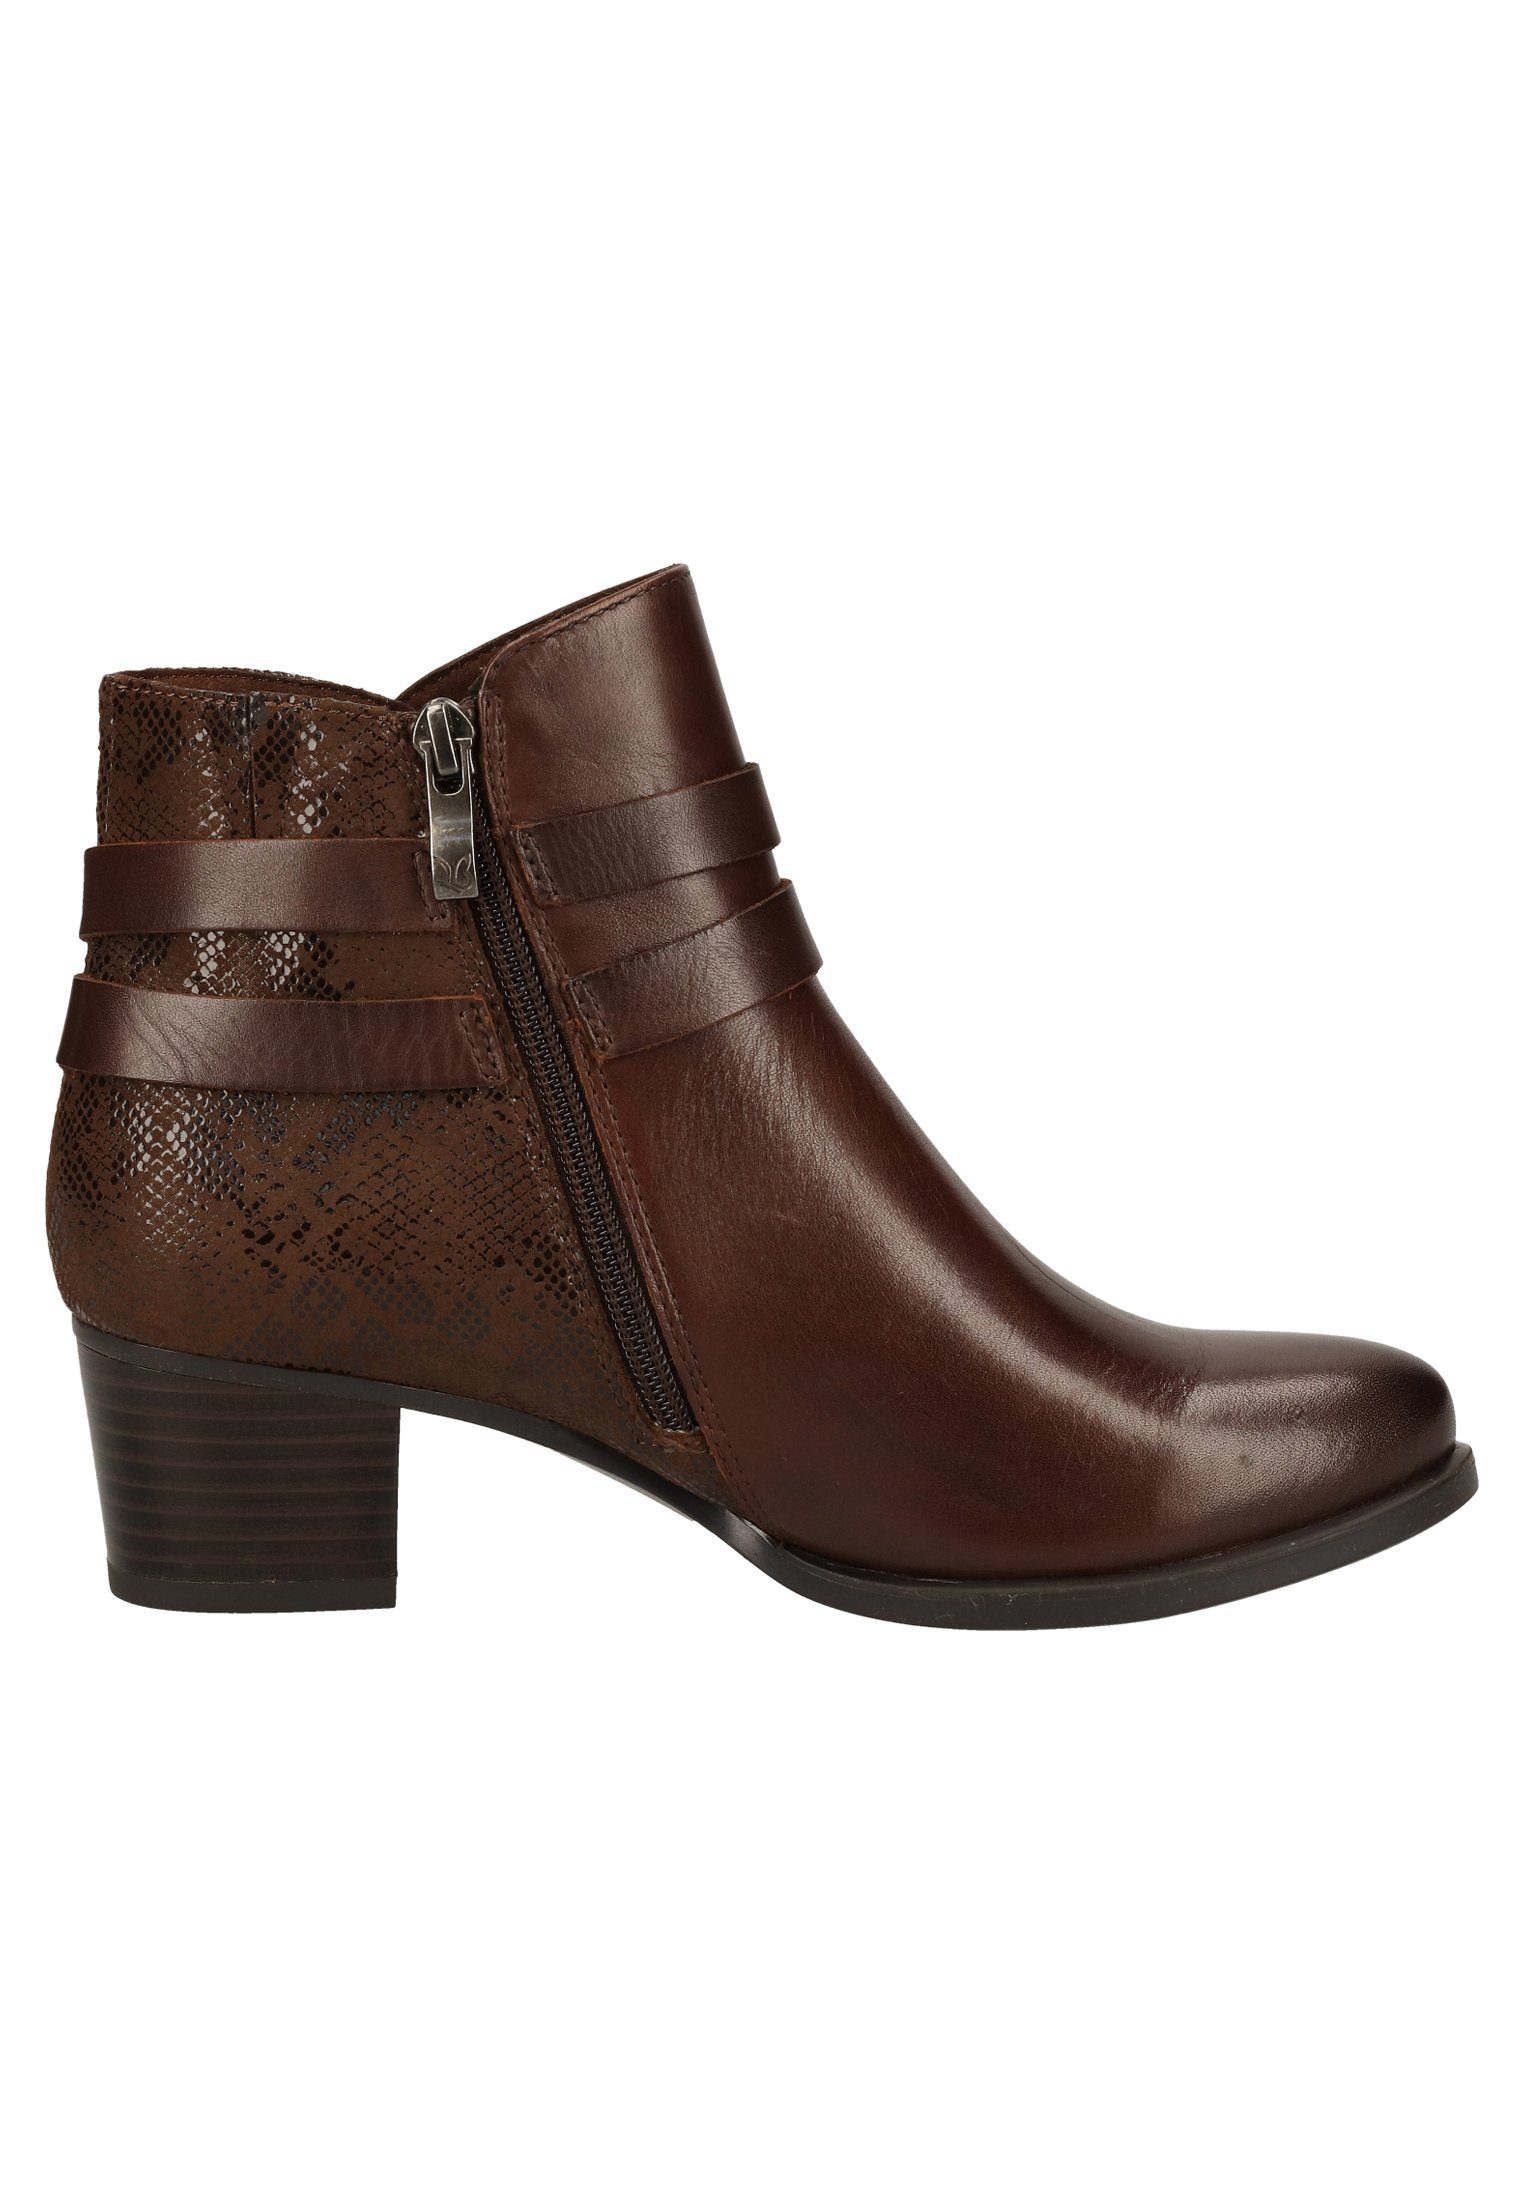 Caprice Ankle Boot dk brown nappa 337/dunkelbraun